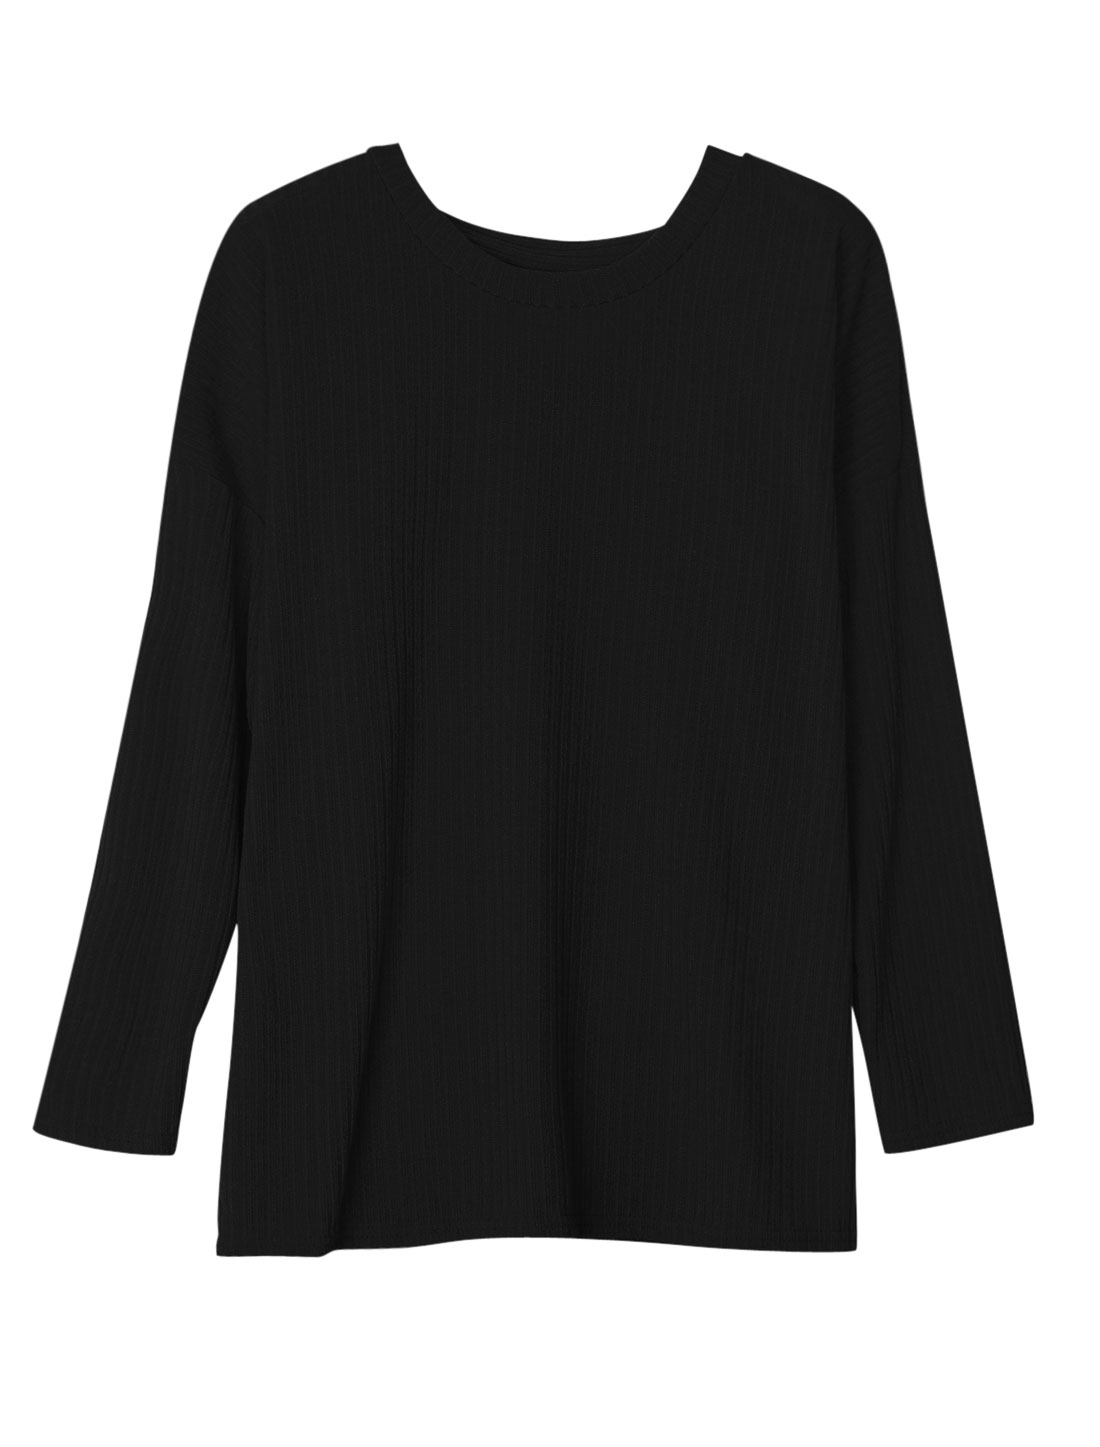 Women Round Neck Long Batwing Sleeves Tunic Knit Shirt Black S